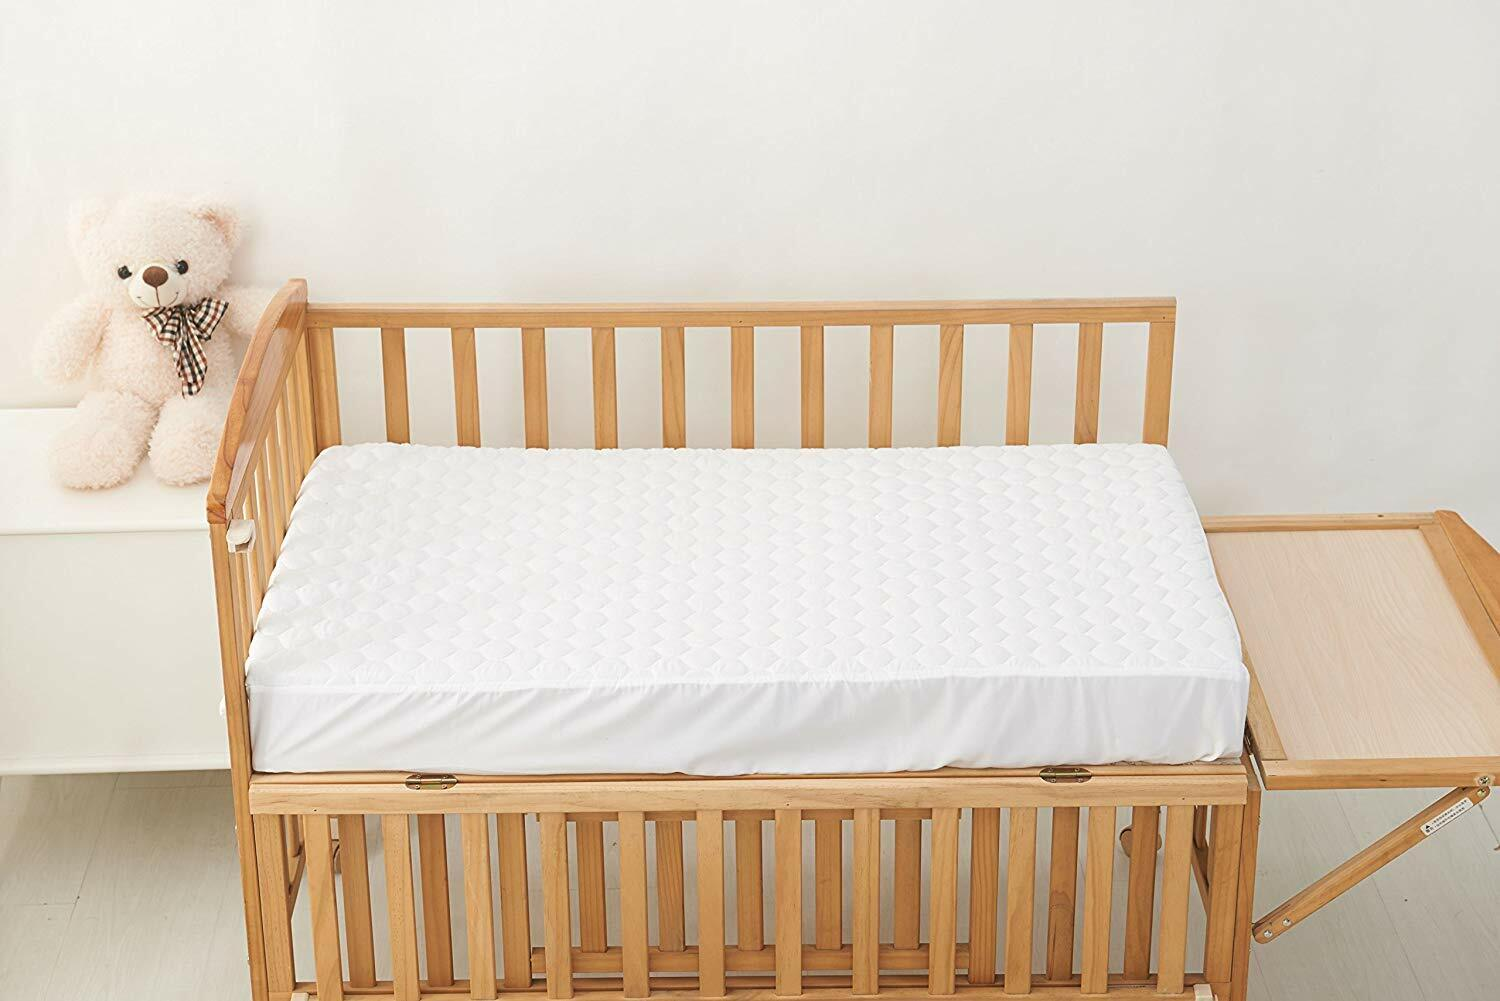 100% Waterproof Fitted Crib and Toddler Protective Mattress